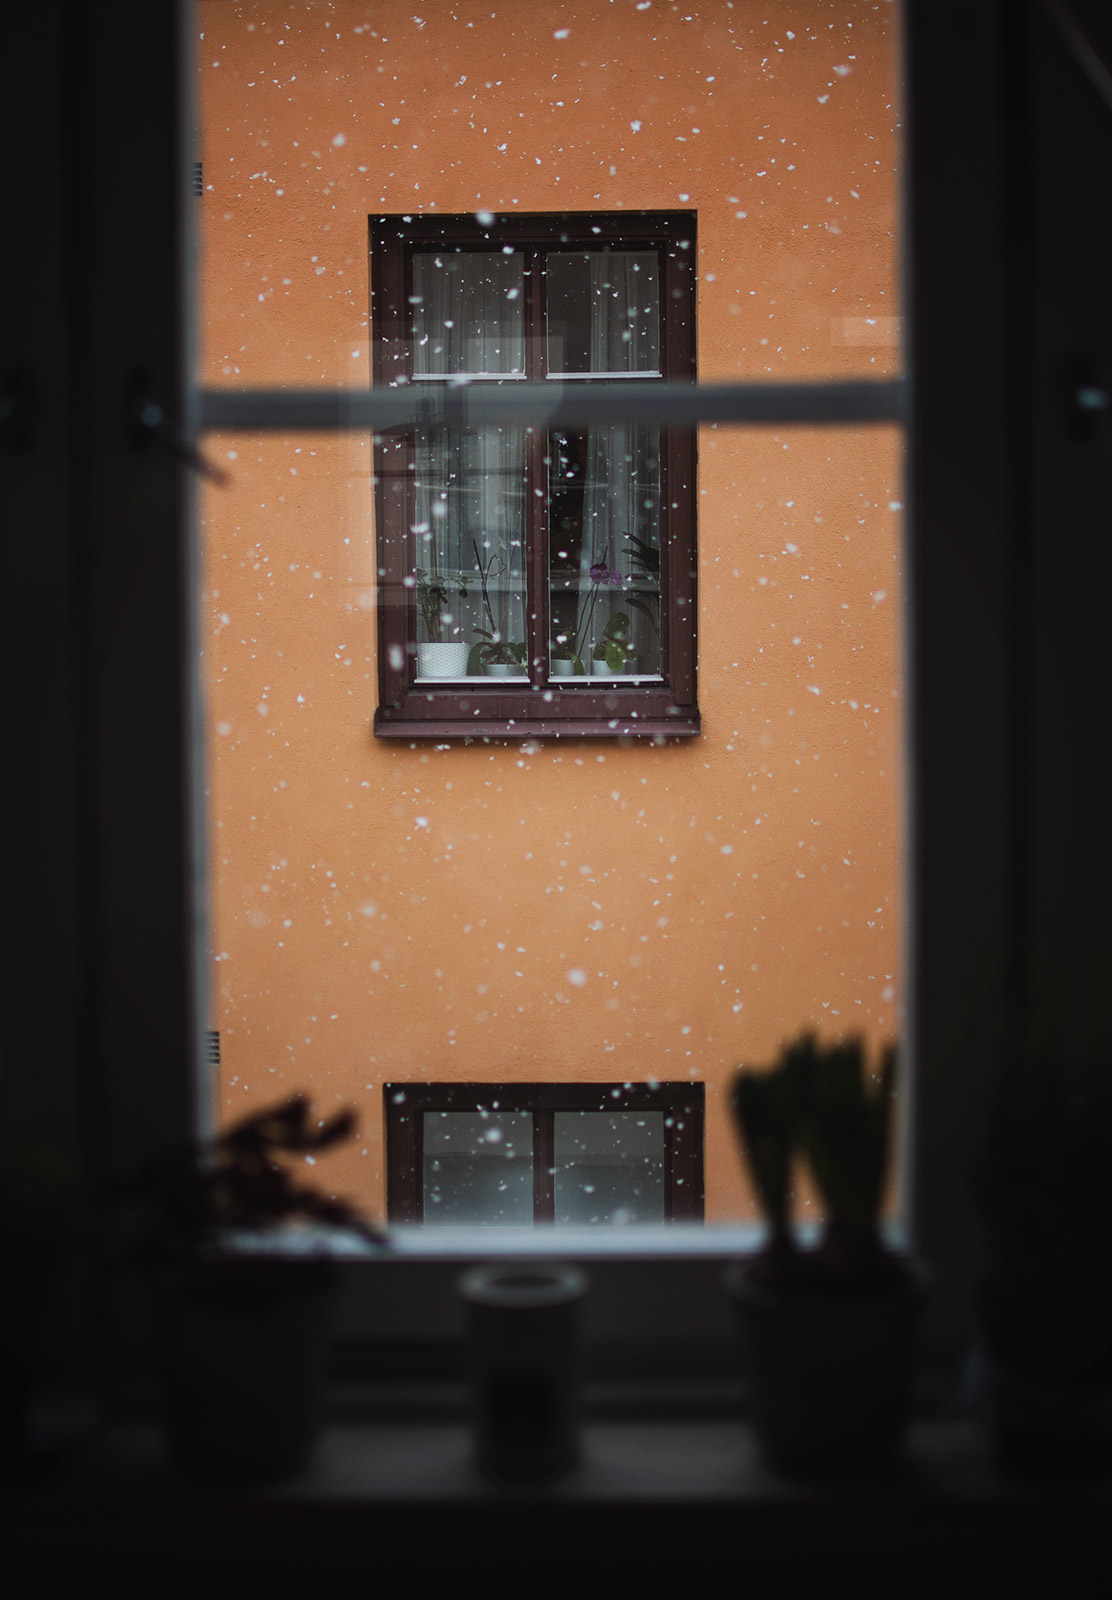 Snow in window